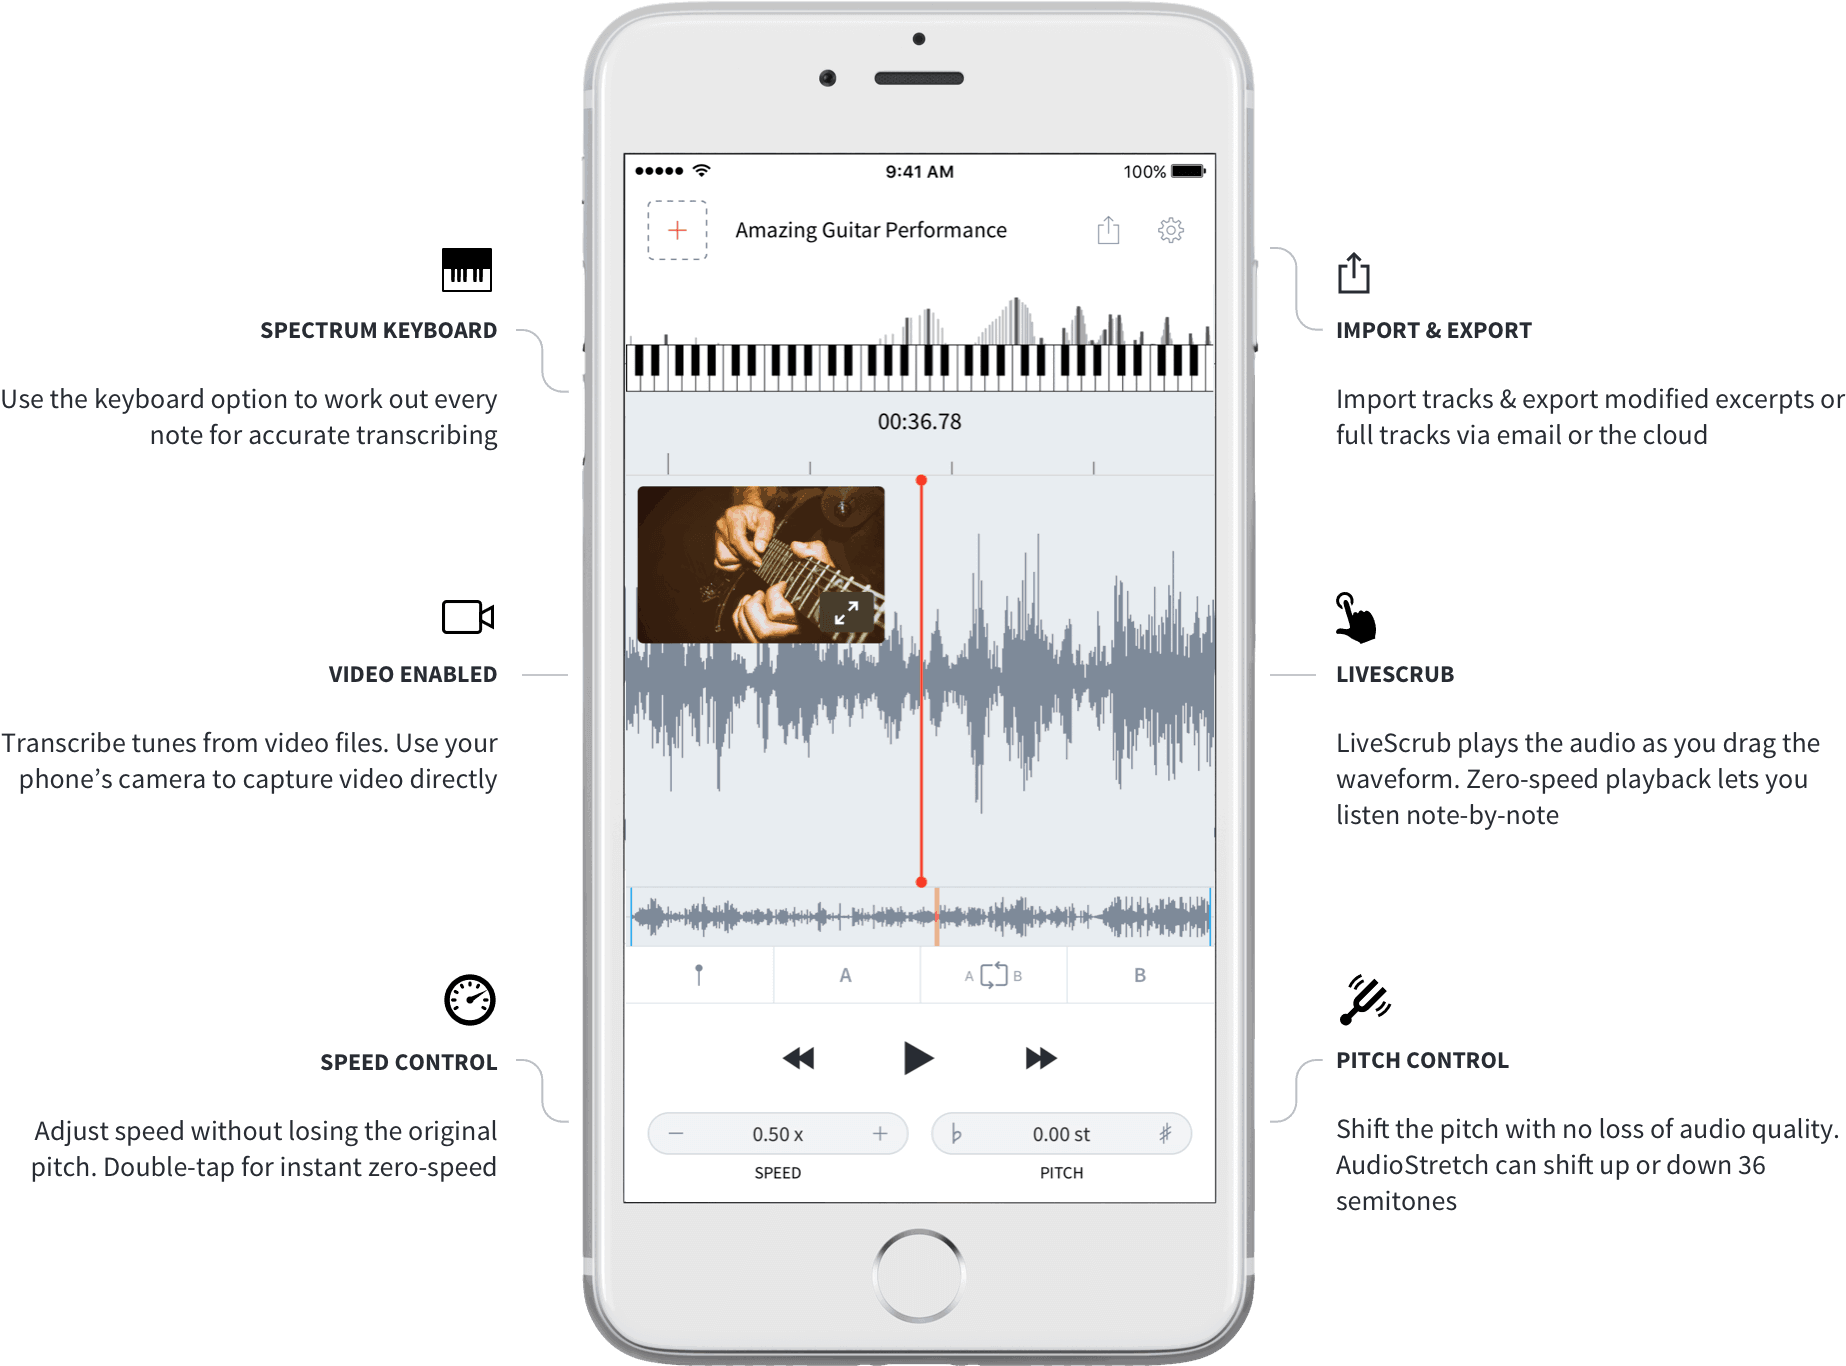 The AudioStretch audio transcription app works for videos, too.